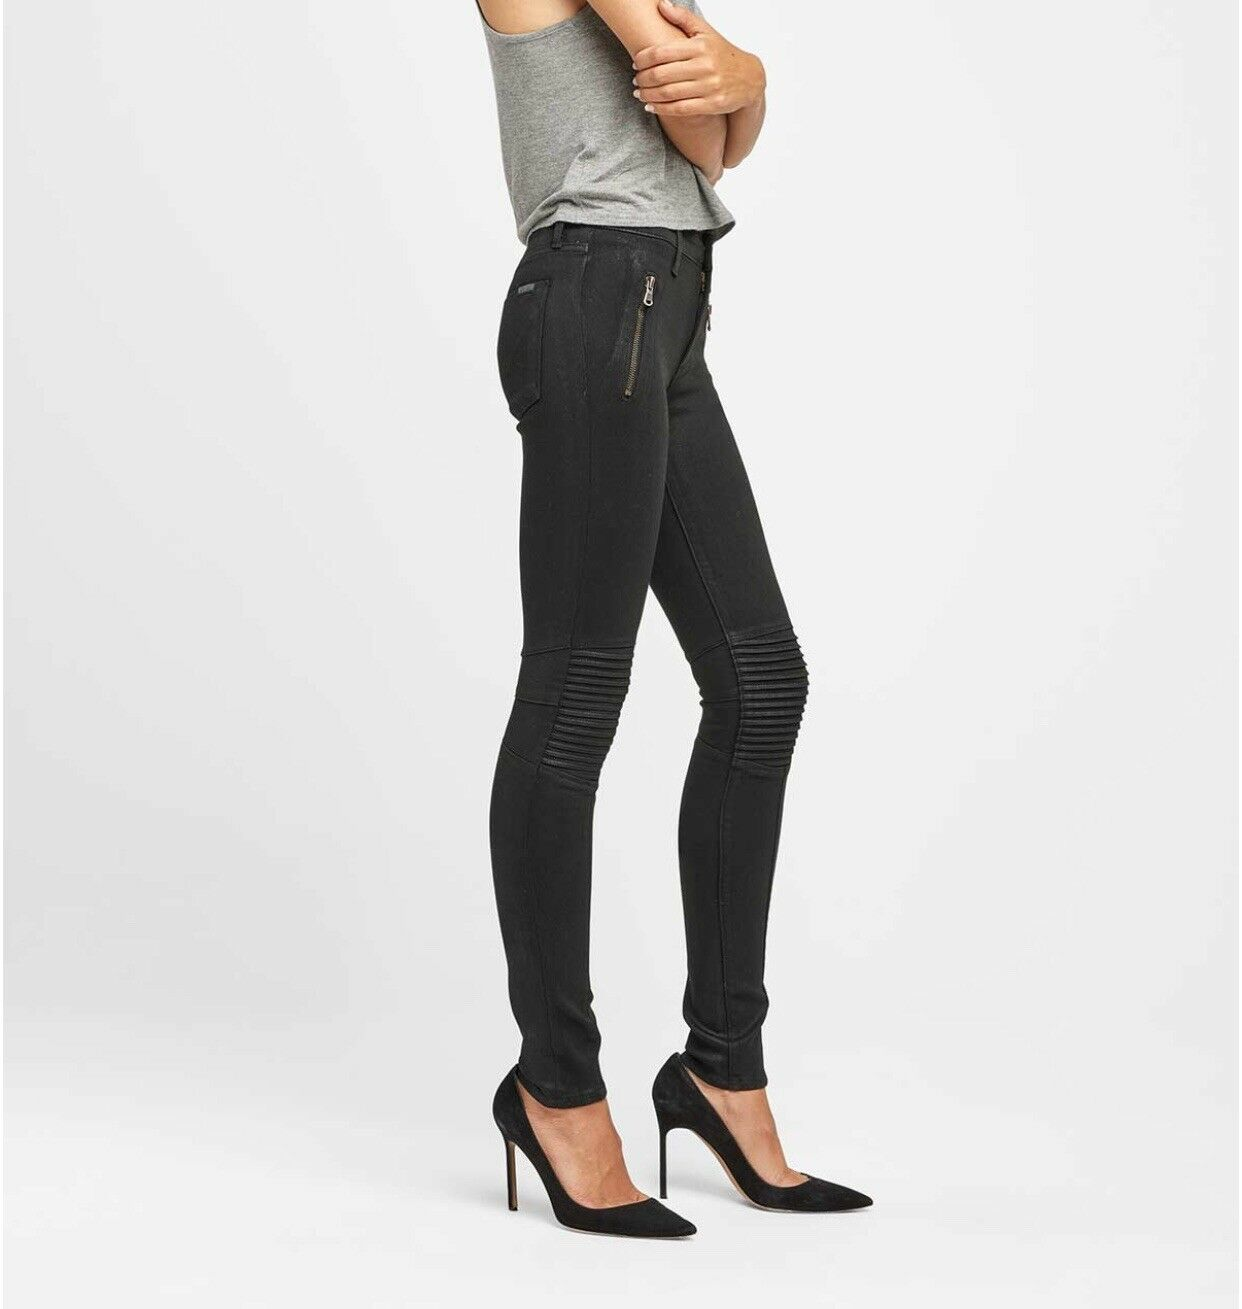 Nwt Hudson Stark Moto Pants Jeans Faded Blk High Waisted Sz 25 Msrp 255